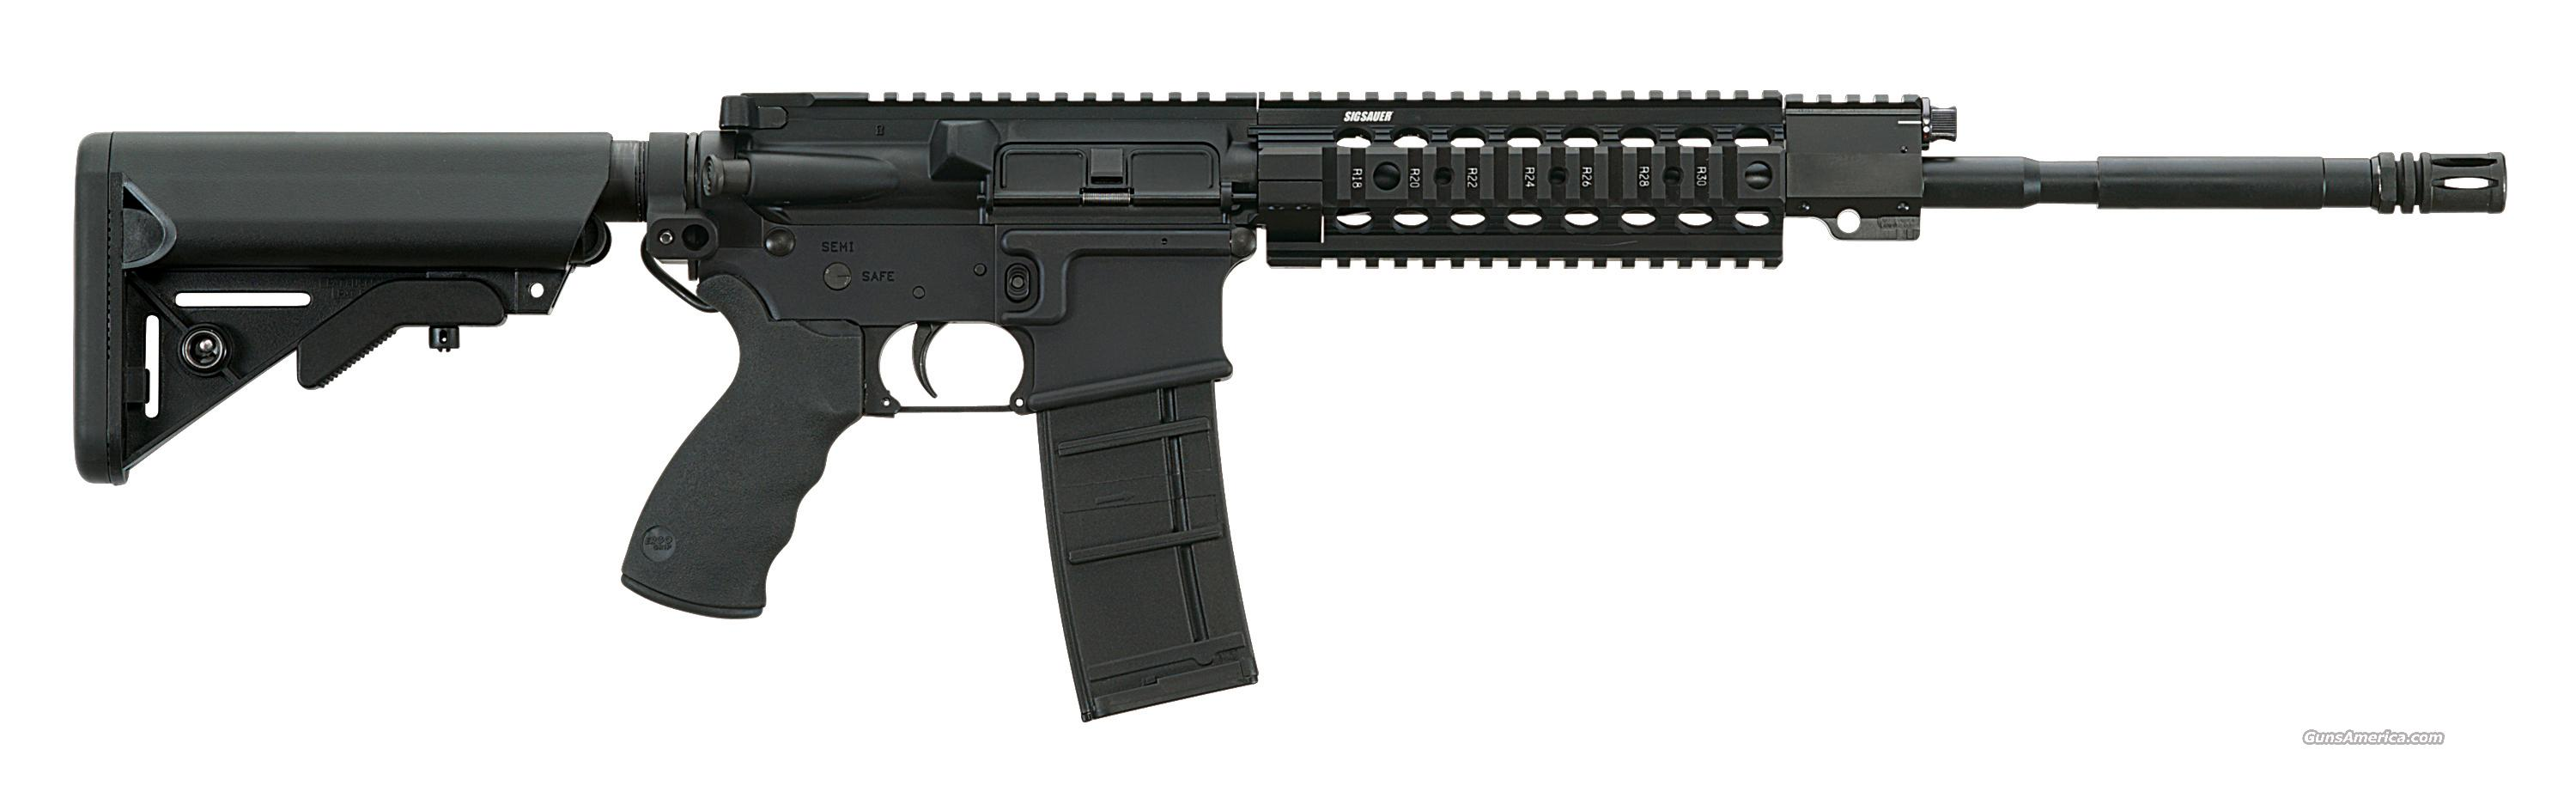 "Sig 516, Patrolman, .223, Gas Piston, Alloy Quad Rail Fore End, Rotating Bolt System, with 3 Position Gas Regulator, 7075-T6 Aluminum Upper and Lower Receiver with Hard Coat Anodized Finish, 16"" Free Floating-Chrome Lined Barrel  Guns > Rifles > Sig - Sauer/Sigarms Rifles"